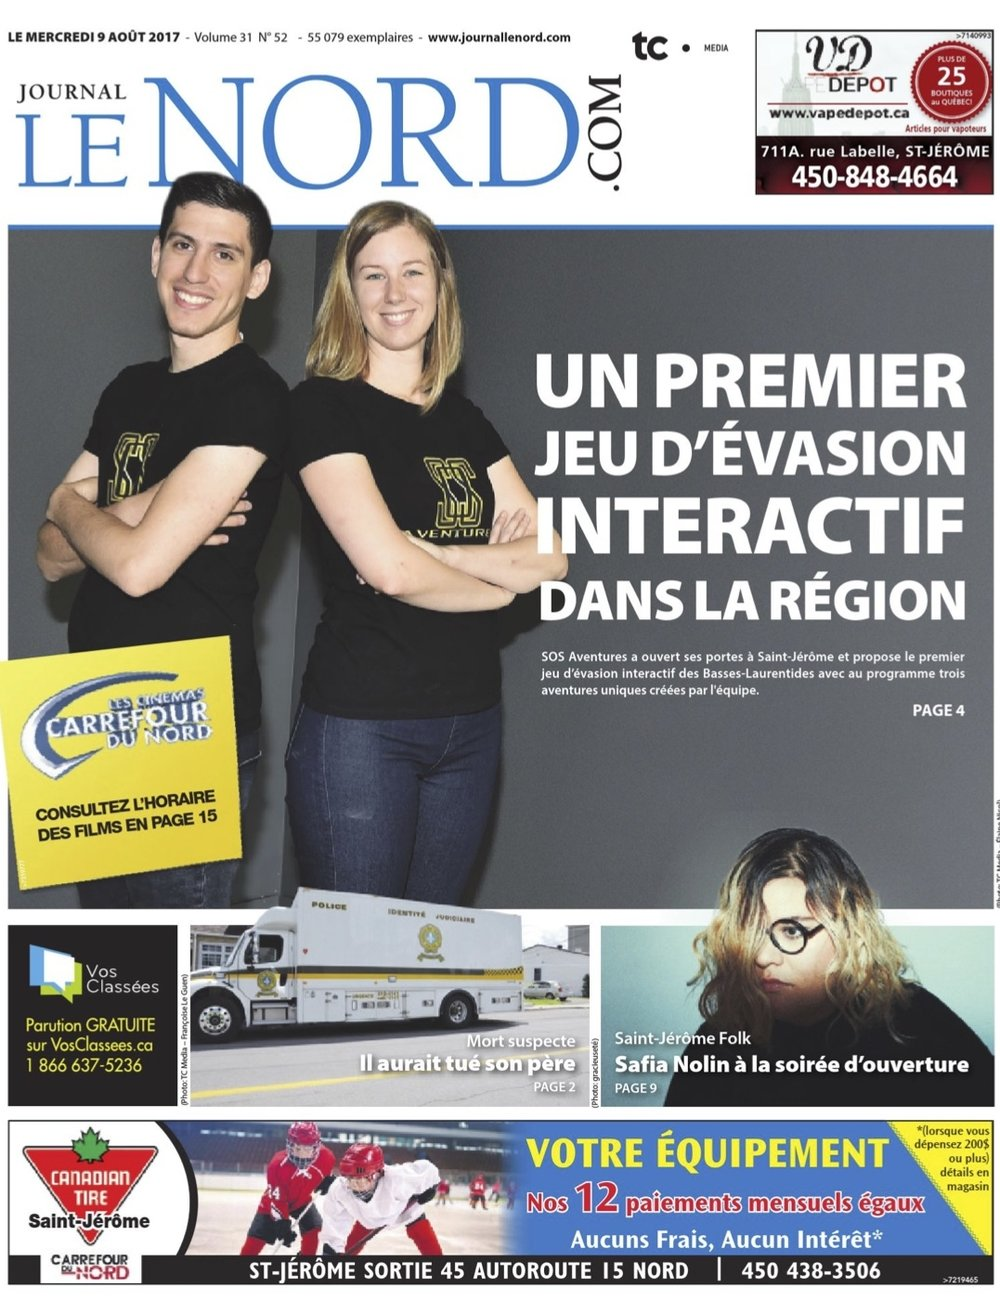 Front page Le Nord.jpg